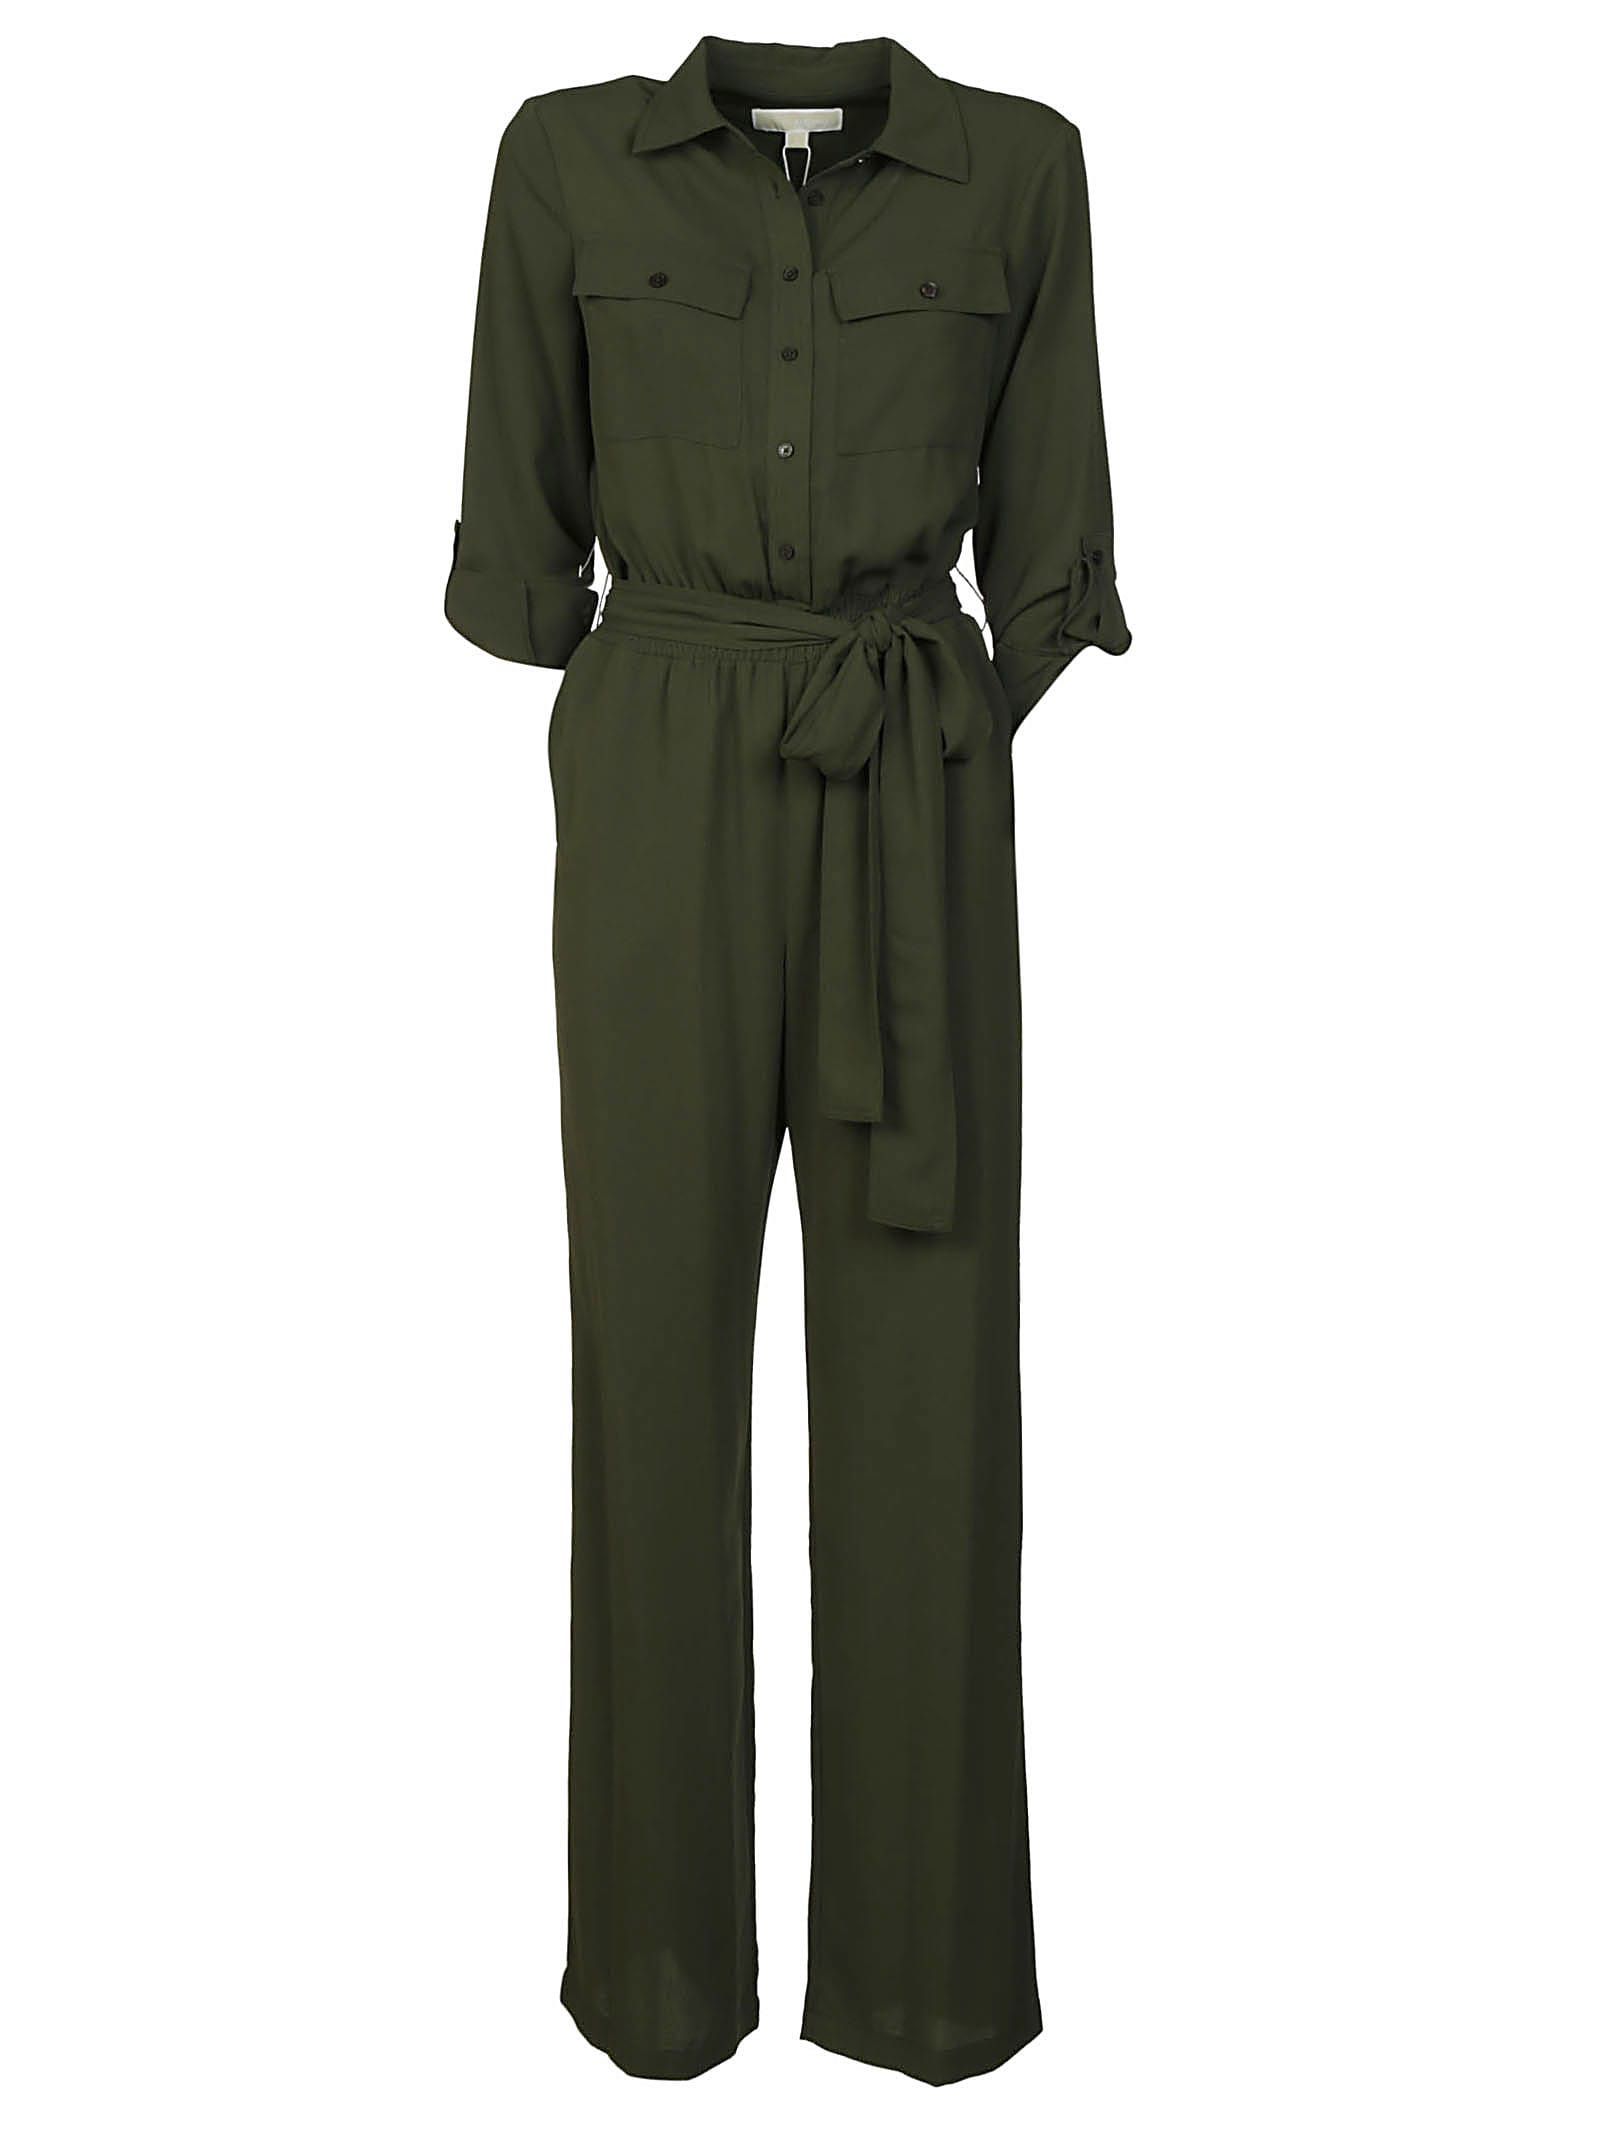 Buy Michael Kors Tie-waist Buttoned Dress online, shop Michael Kors with free shipping